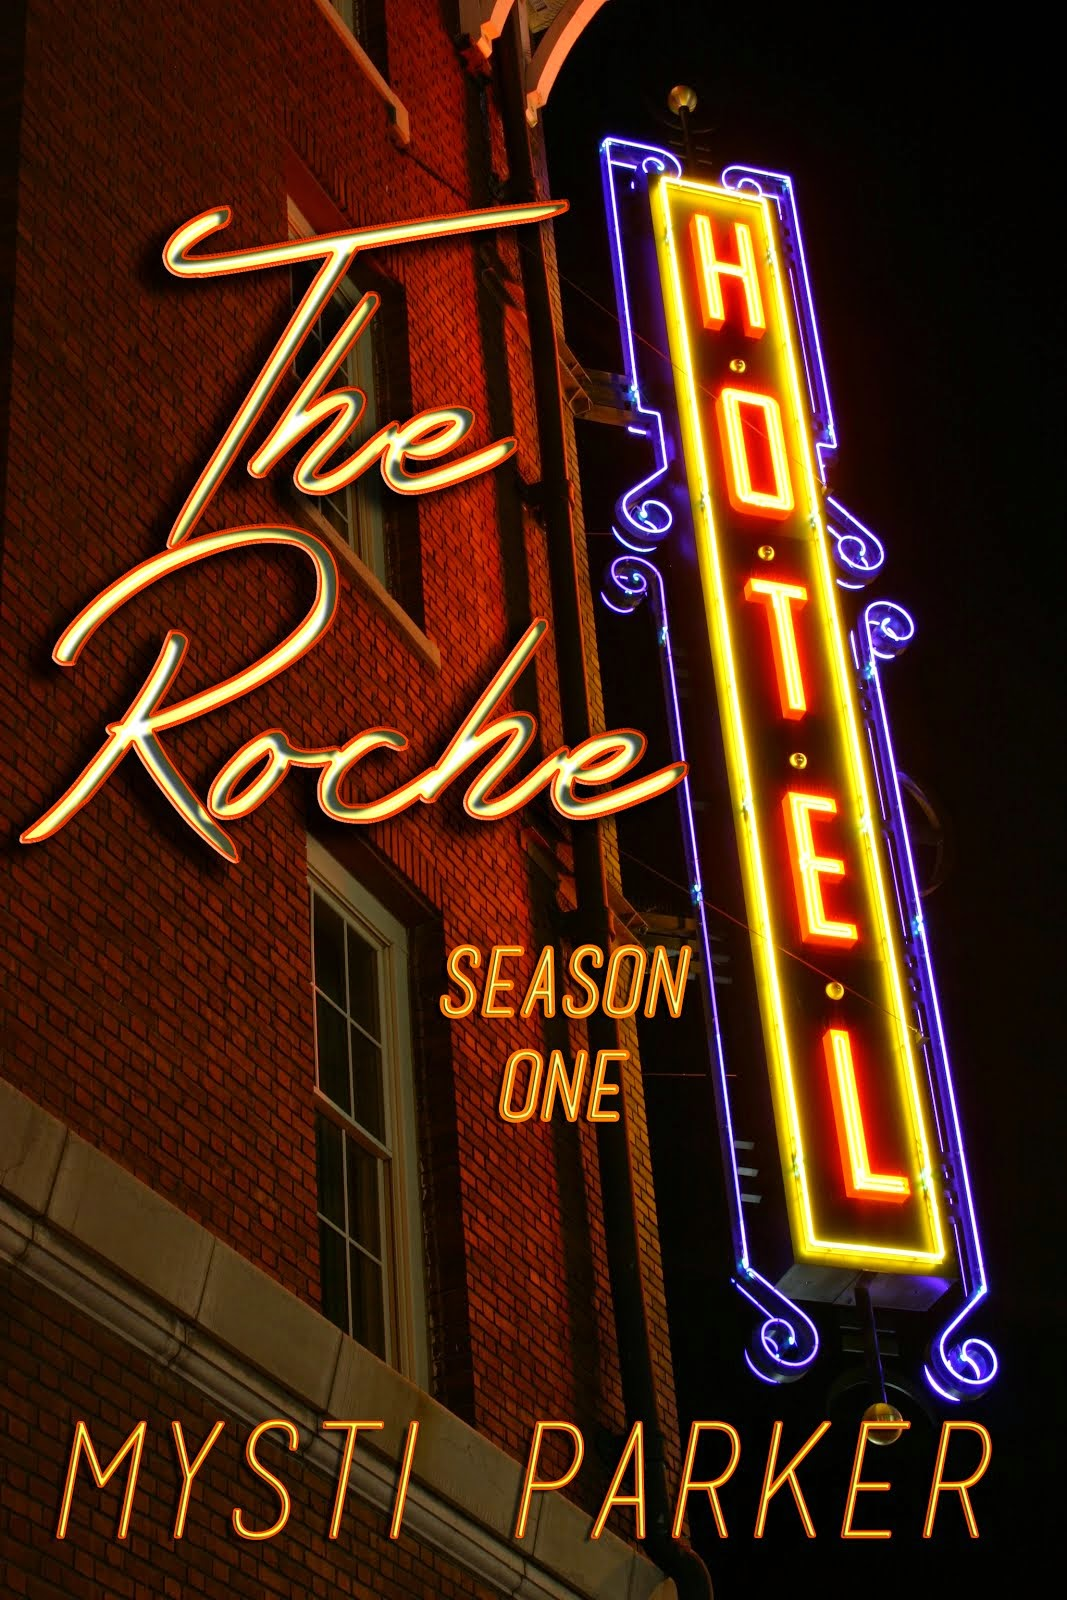 The Roche Hotel Season One